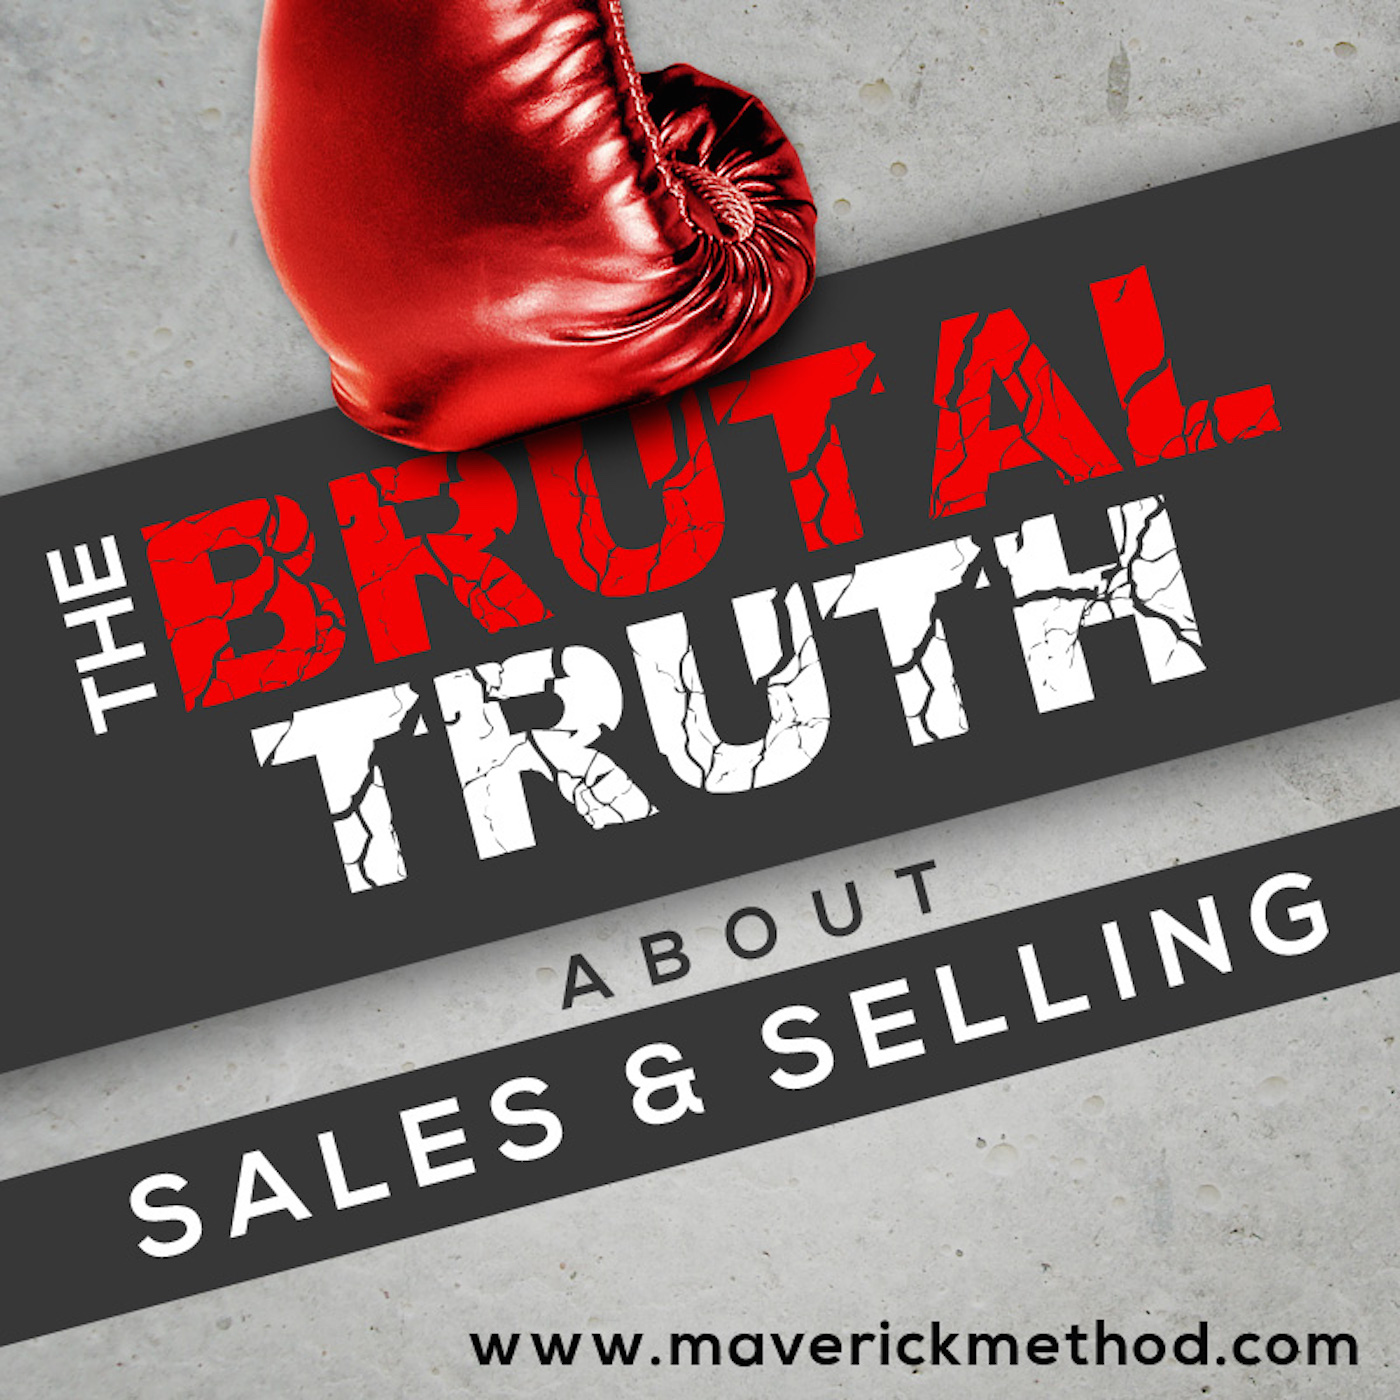 The Brutal Truth About Sales & Selling - B2B Social LinkedIn SaaS Startup Cold Calling Email Advanced Skills